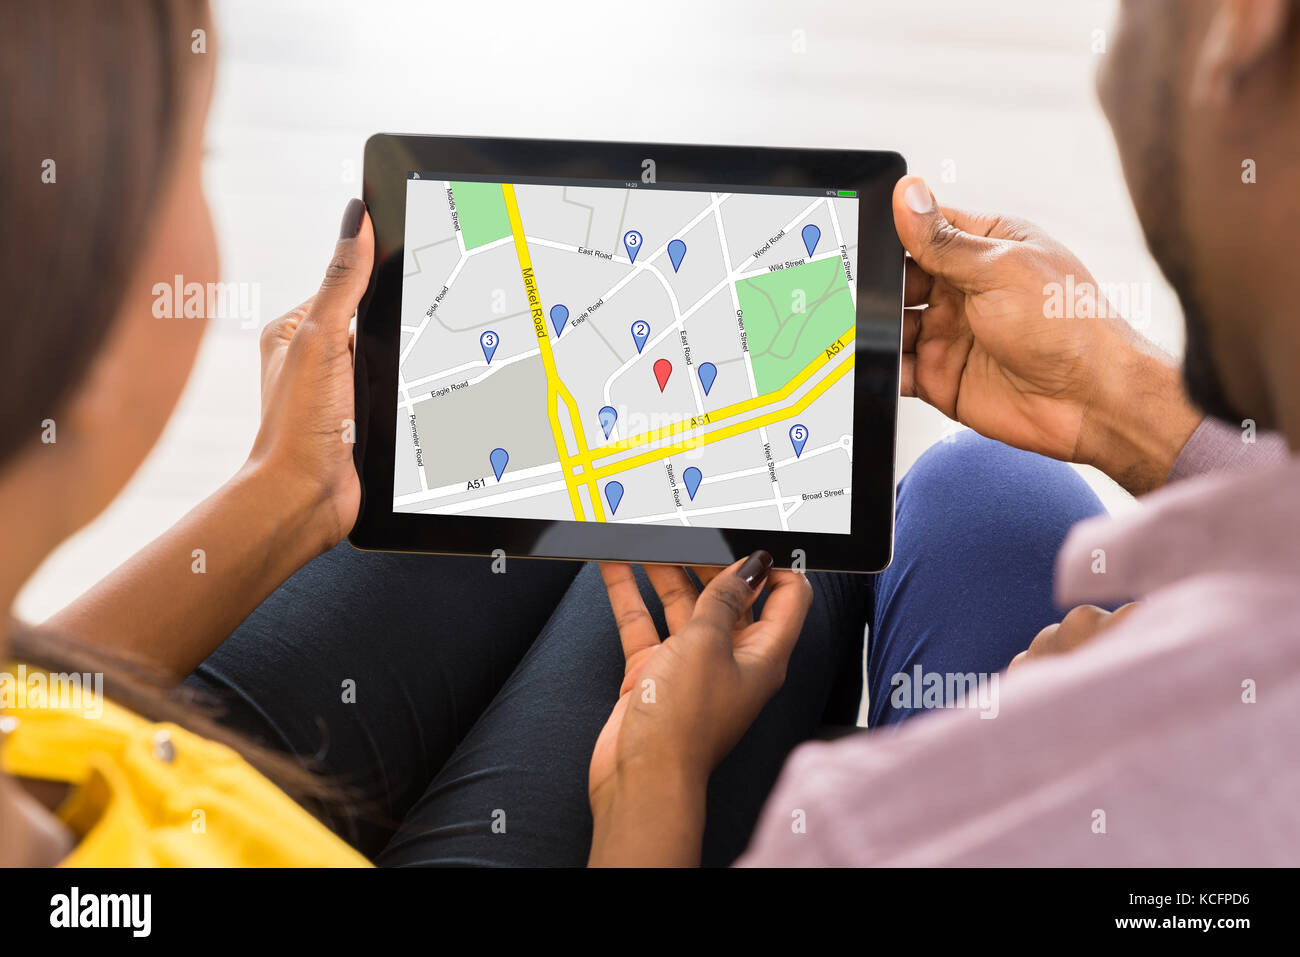 Close-up Of Couple Holding Digital Tablet Showing GPS Map With Navigation Pointers - Stock Image